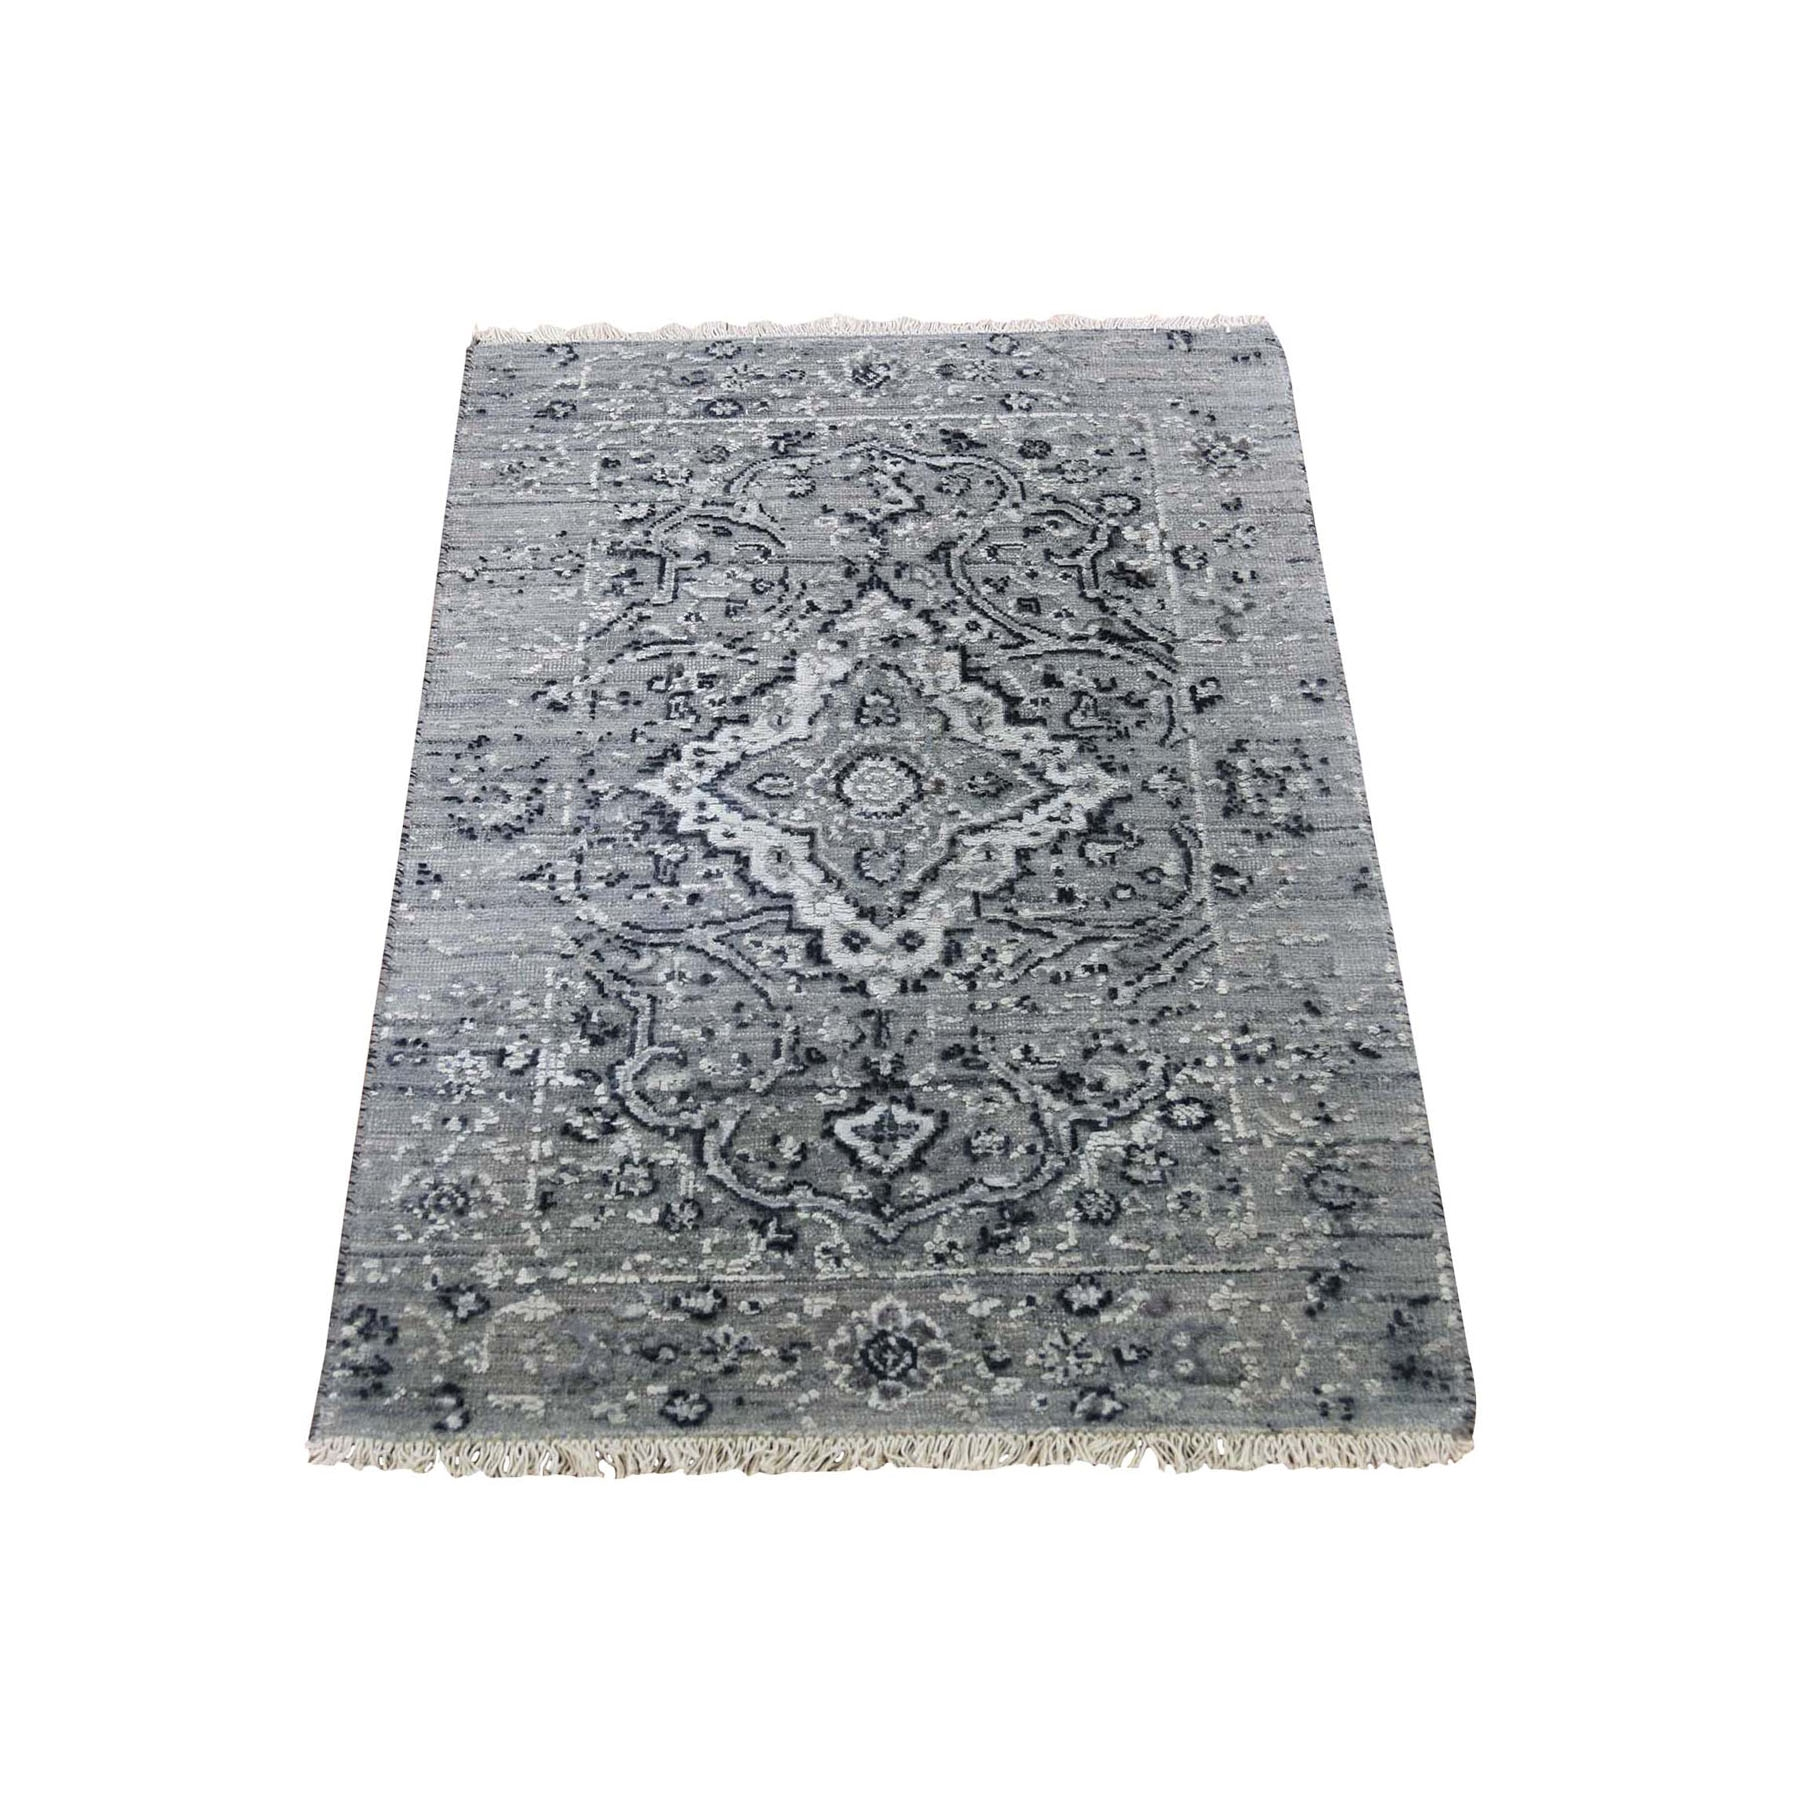 2'X3' Gray Broken Persian Erased Design Silk With Textured Wool Hand Knotted Oriental Rug moad86d0